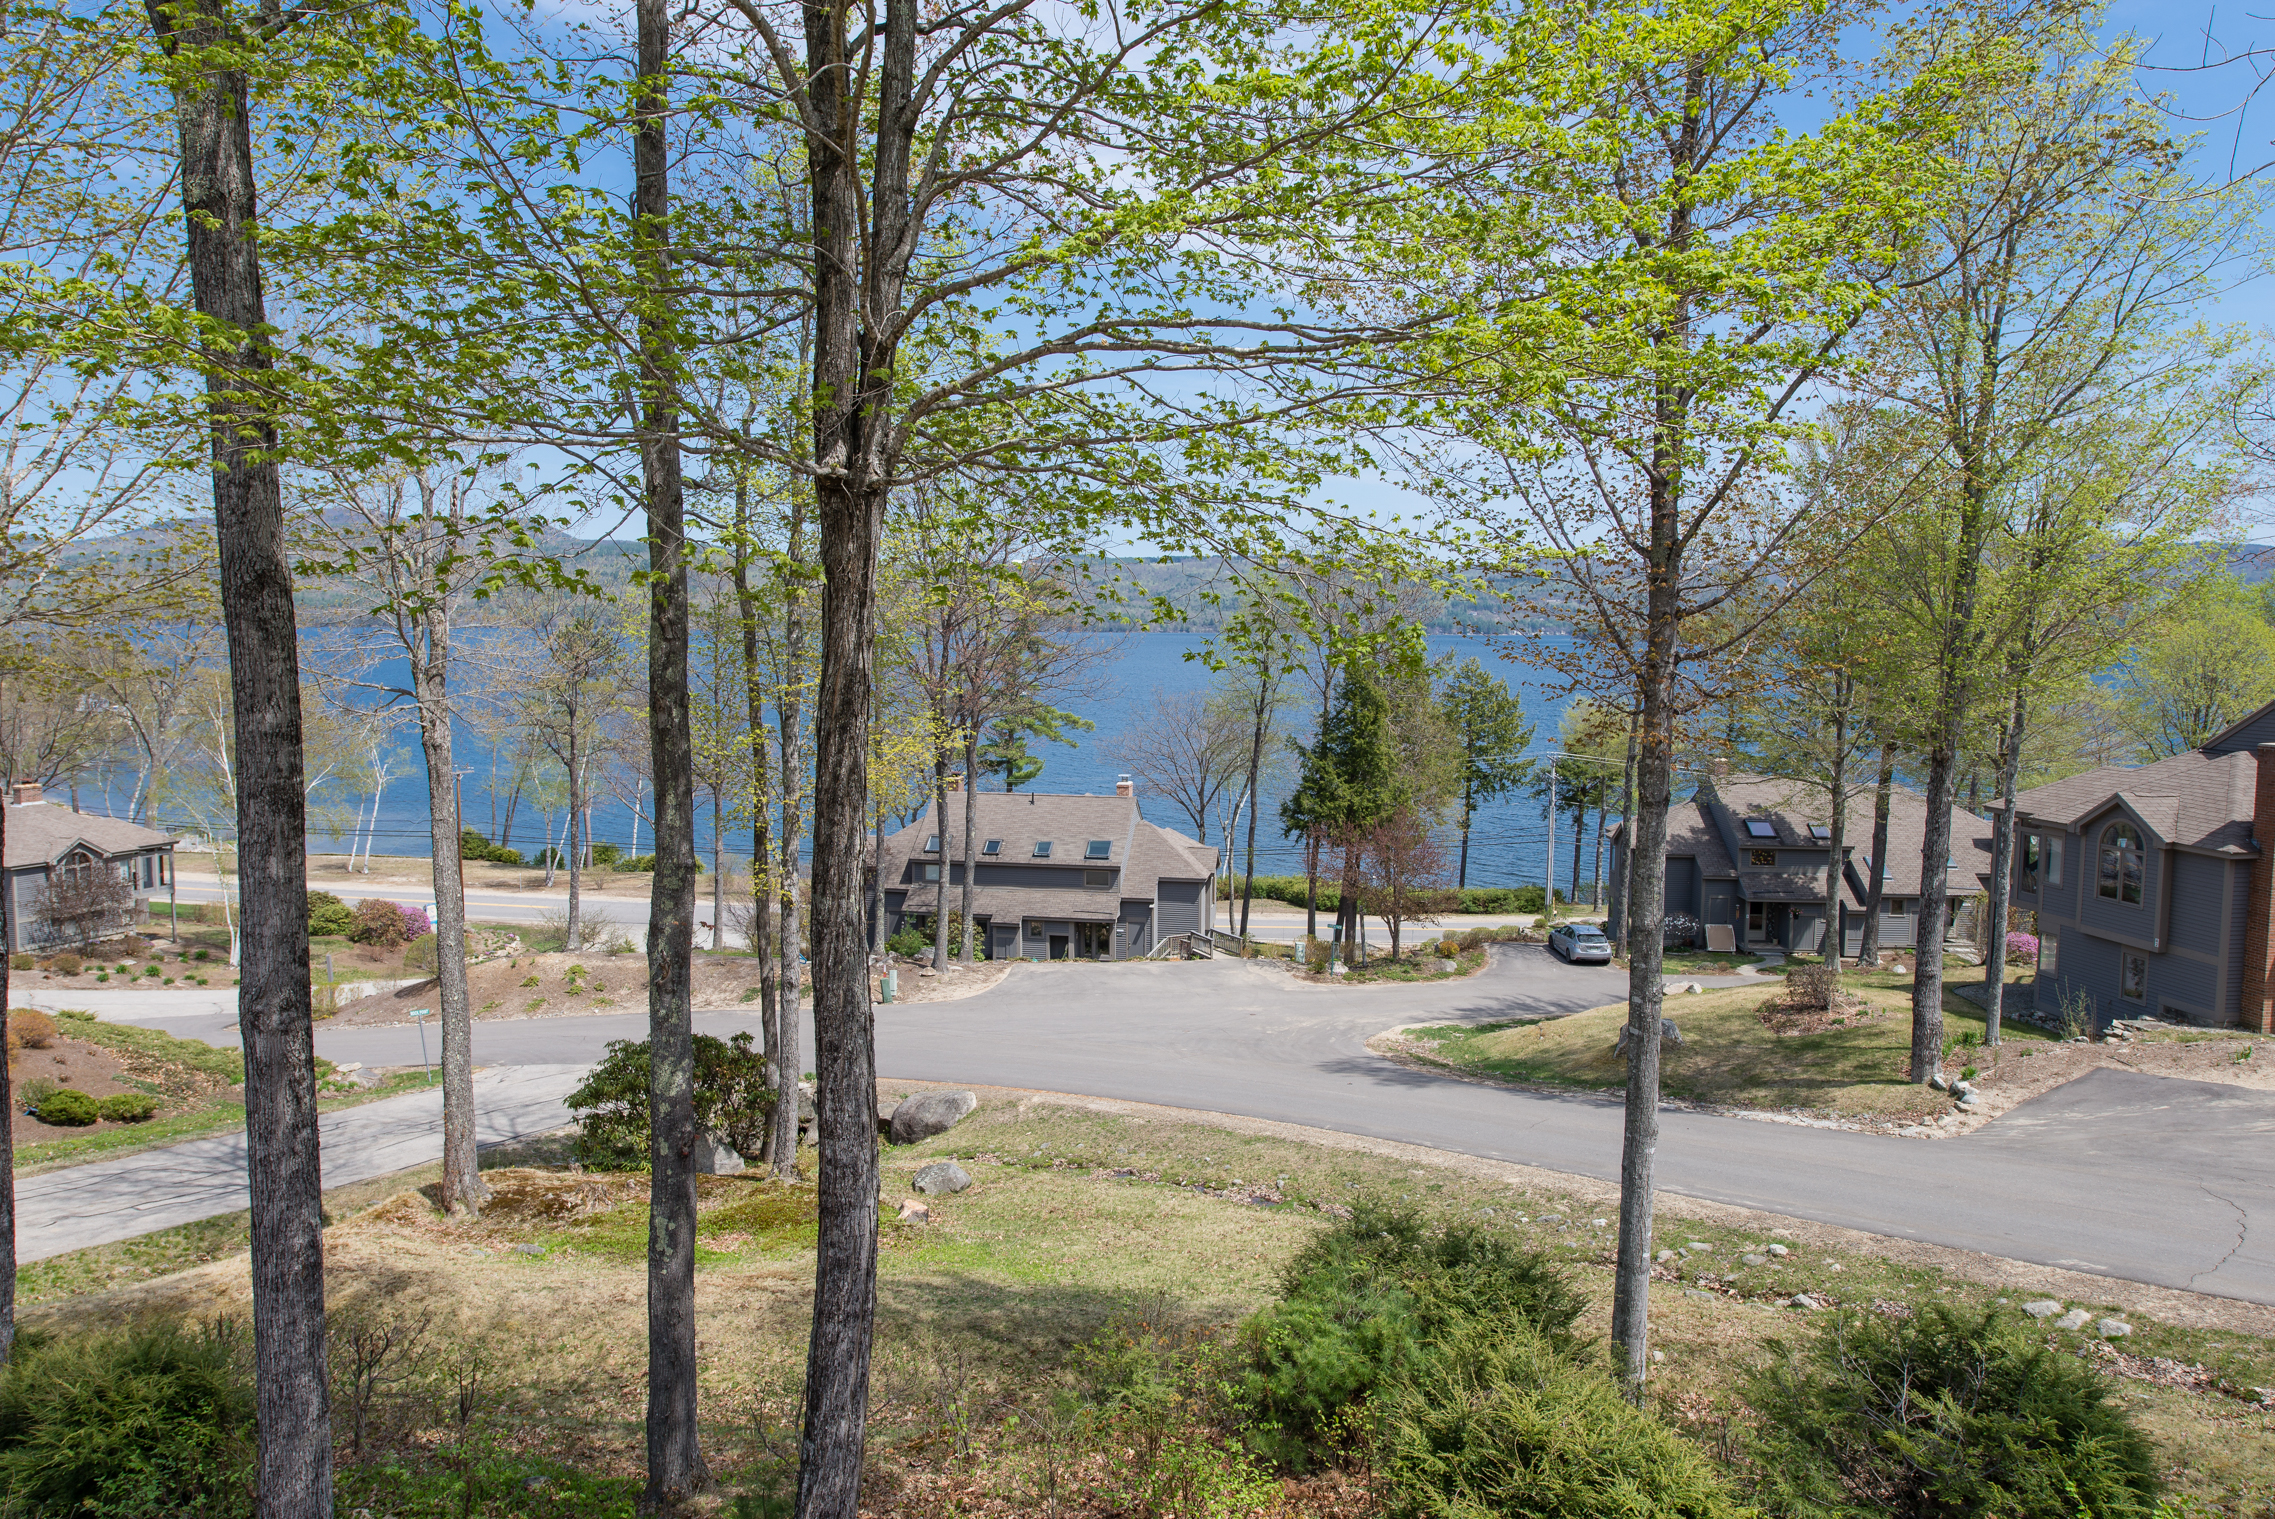 Winnipesaukee Condos and homes for sale - condo picture